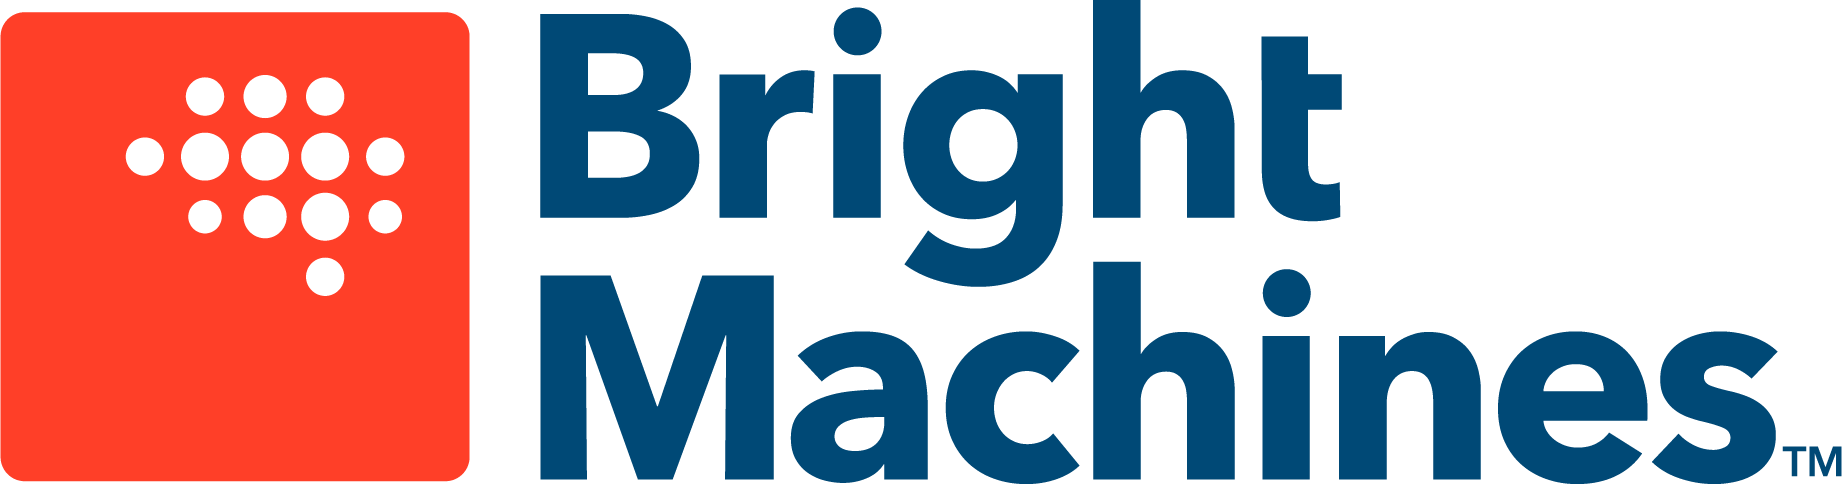 Bright Machines logo